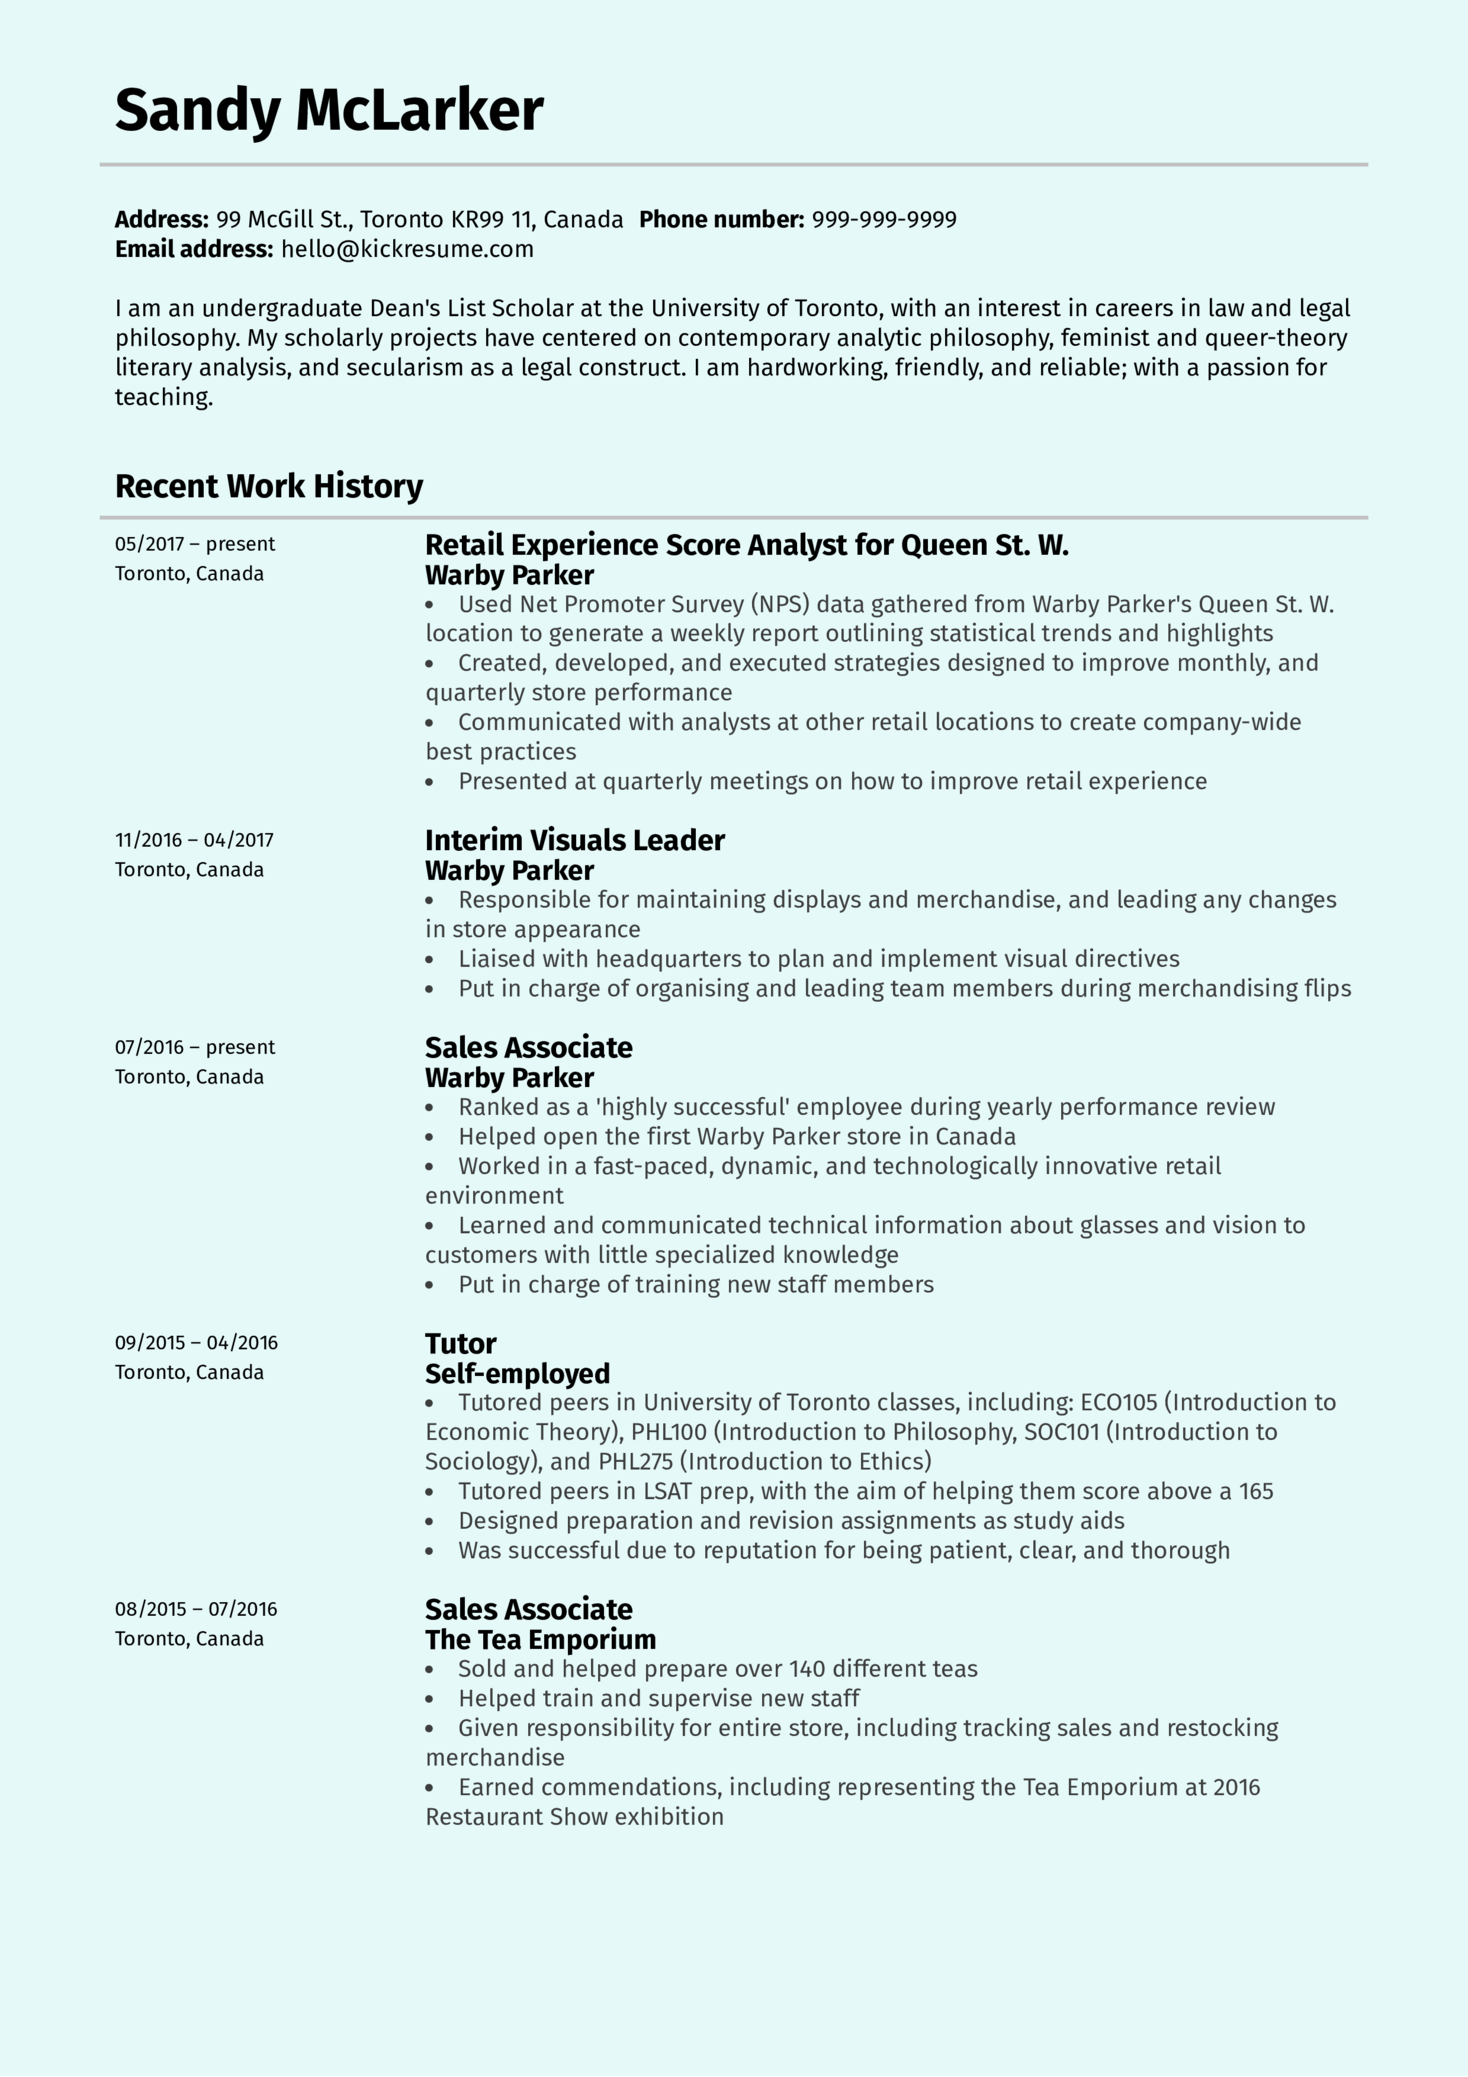 Resume Examples By Real People Retail Experienceyst